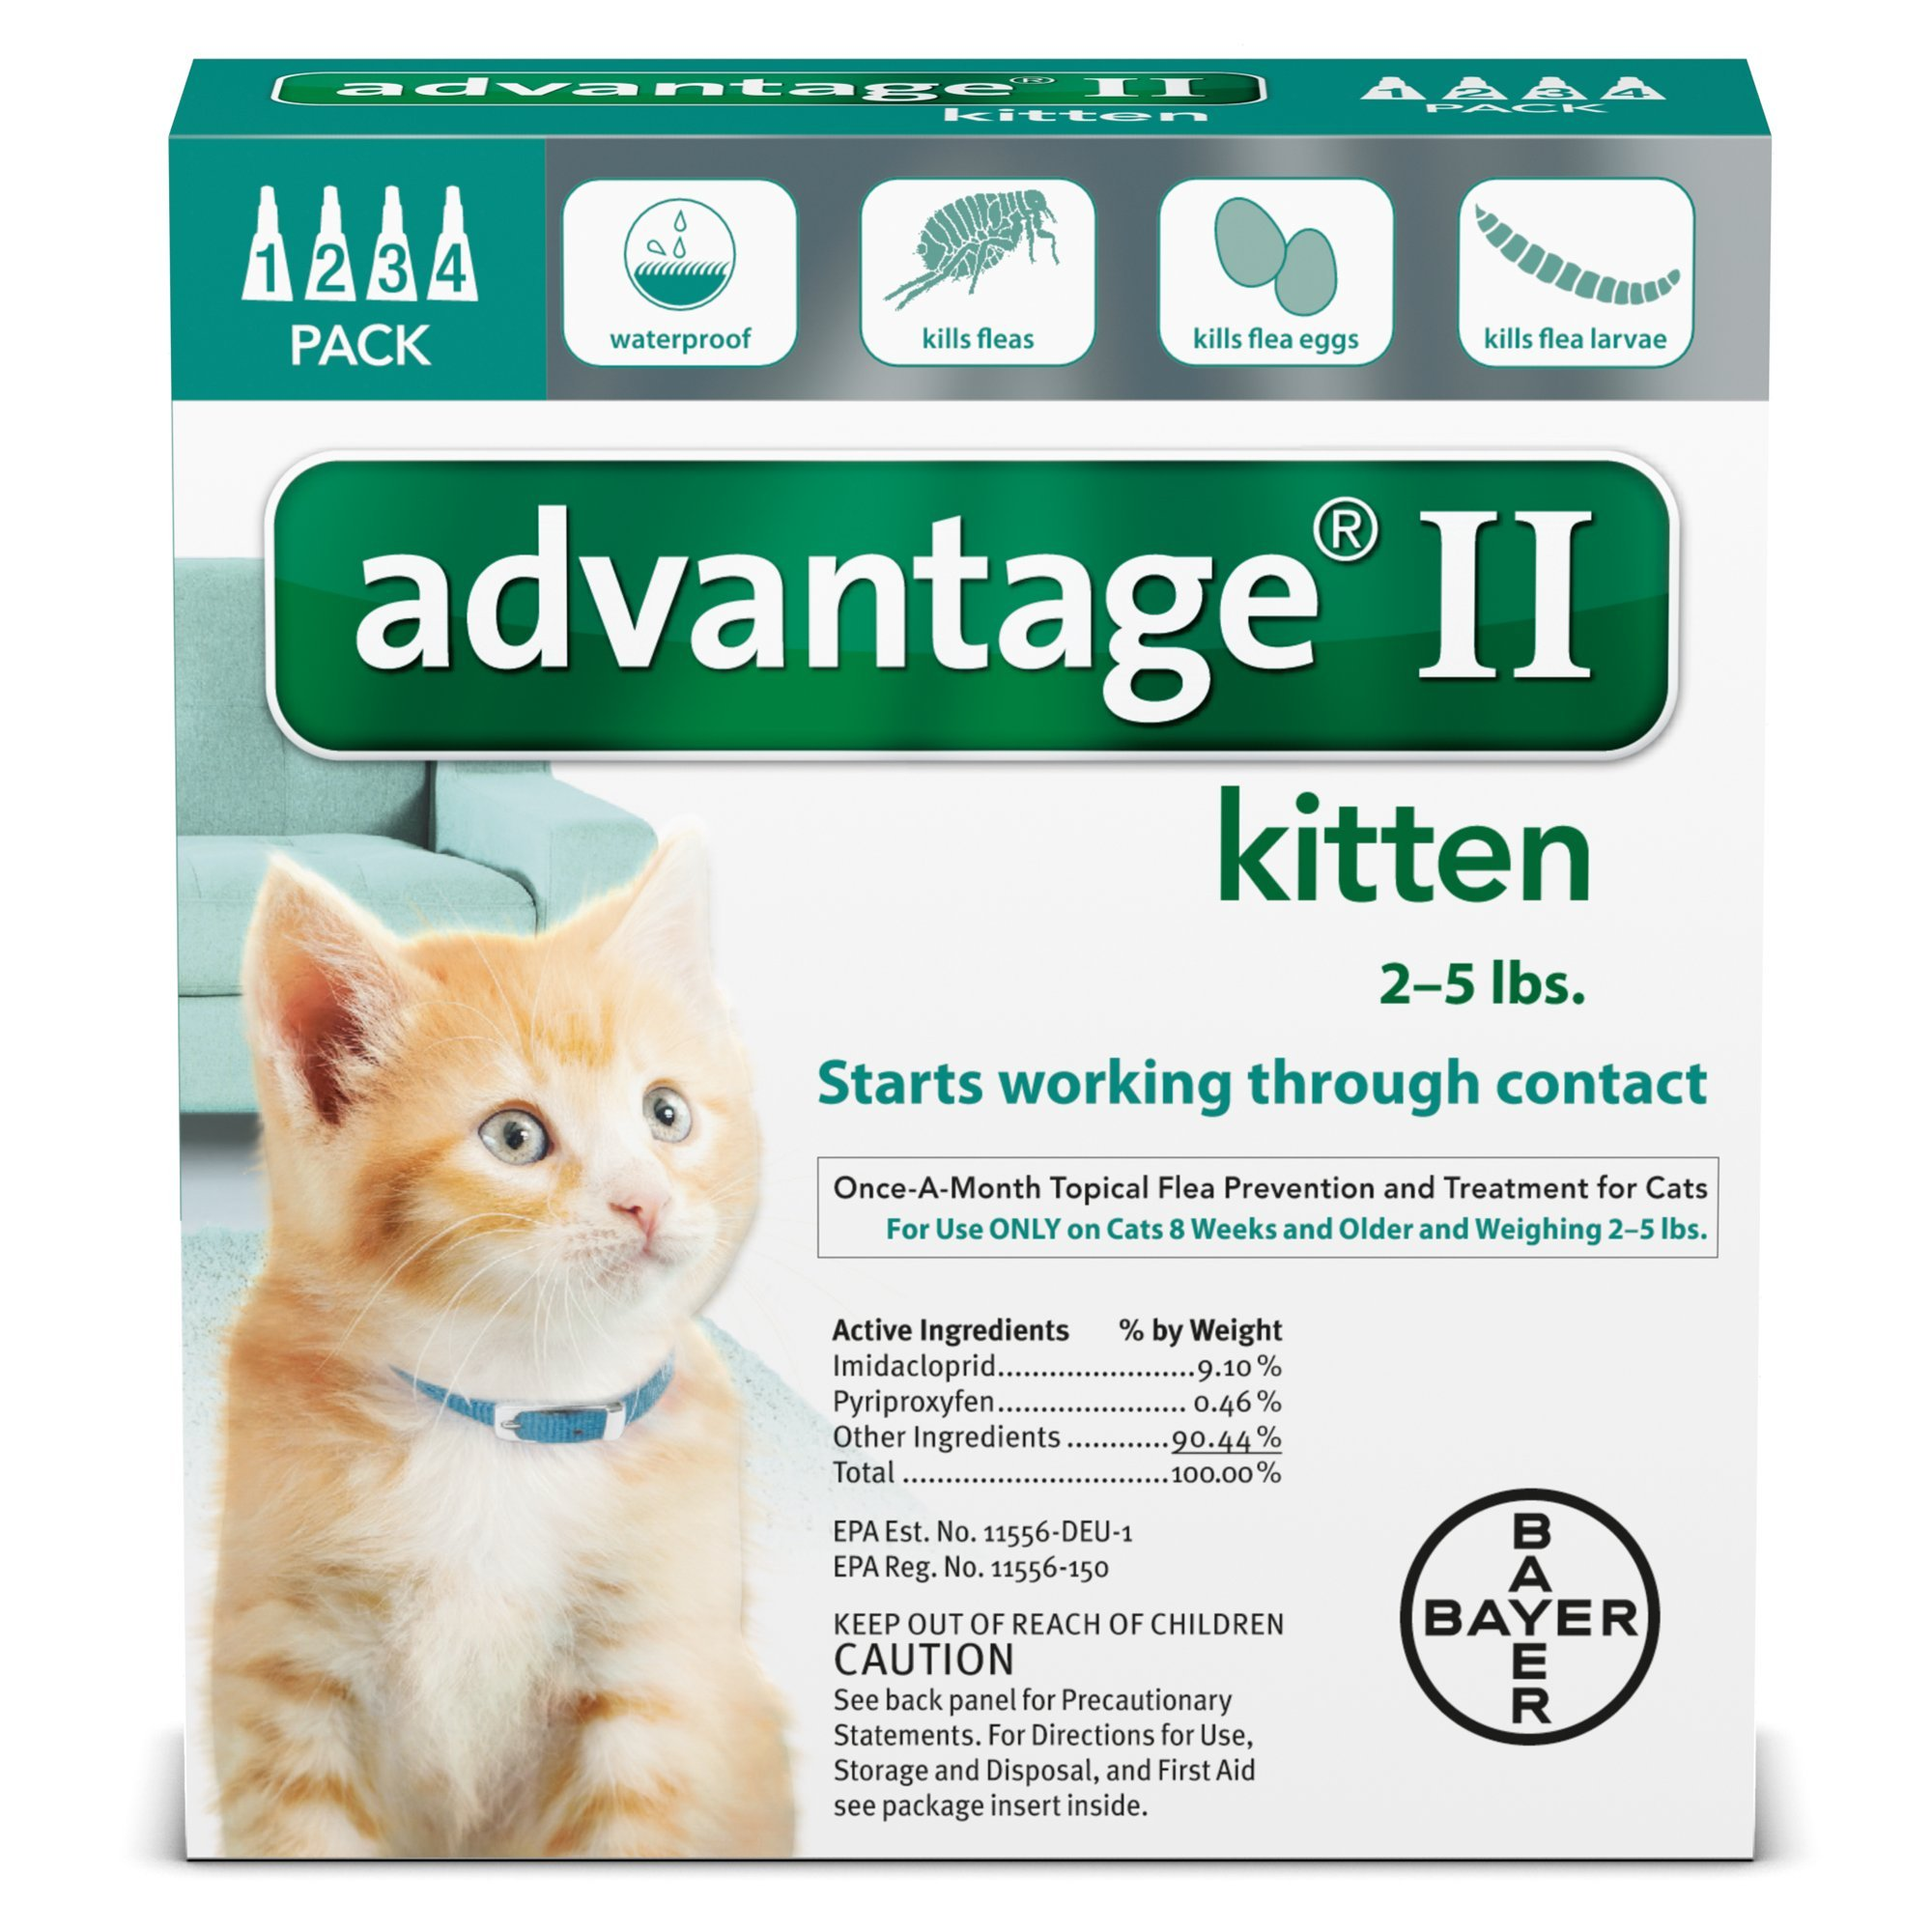 Advantage II Once-A-Month Cat & Kitten Topical Flea Treatment, 2-5 lbs.